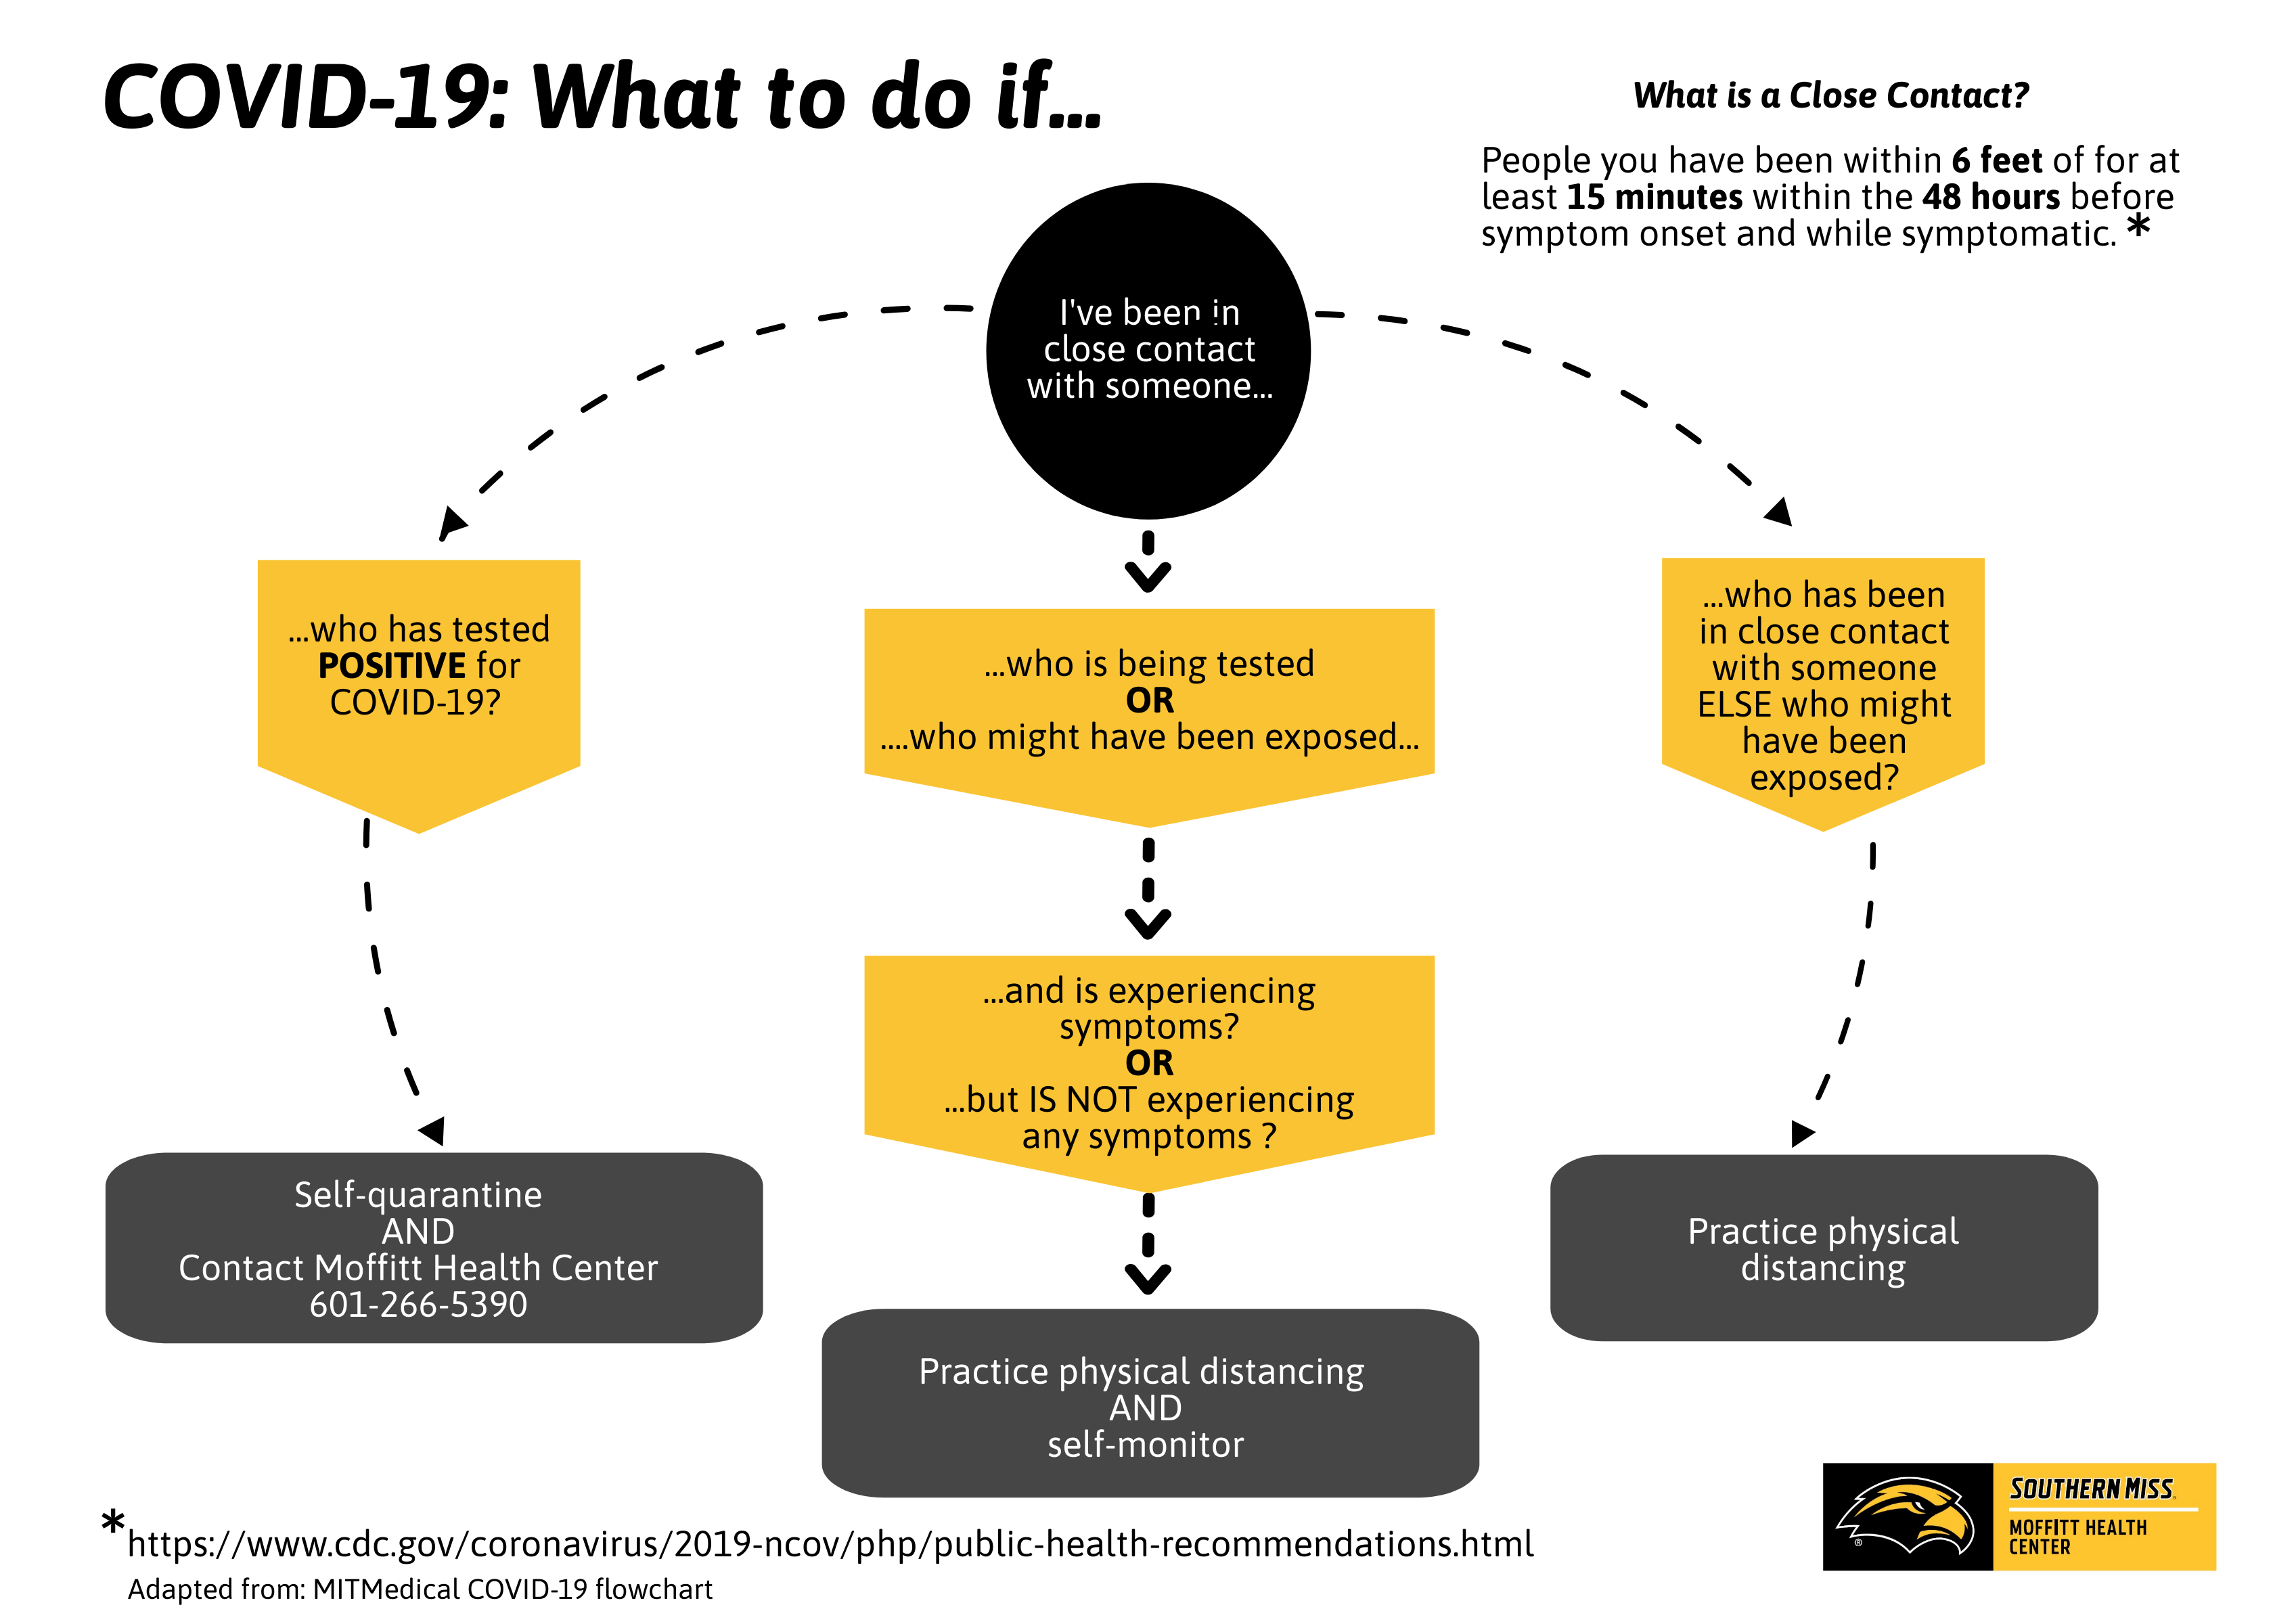 COVID-19 What to do if... Flowchart